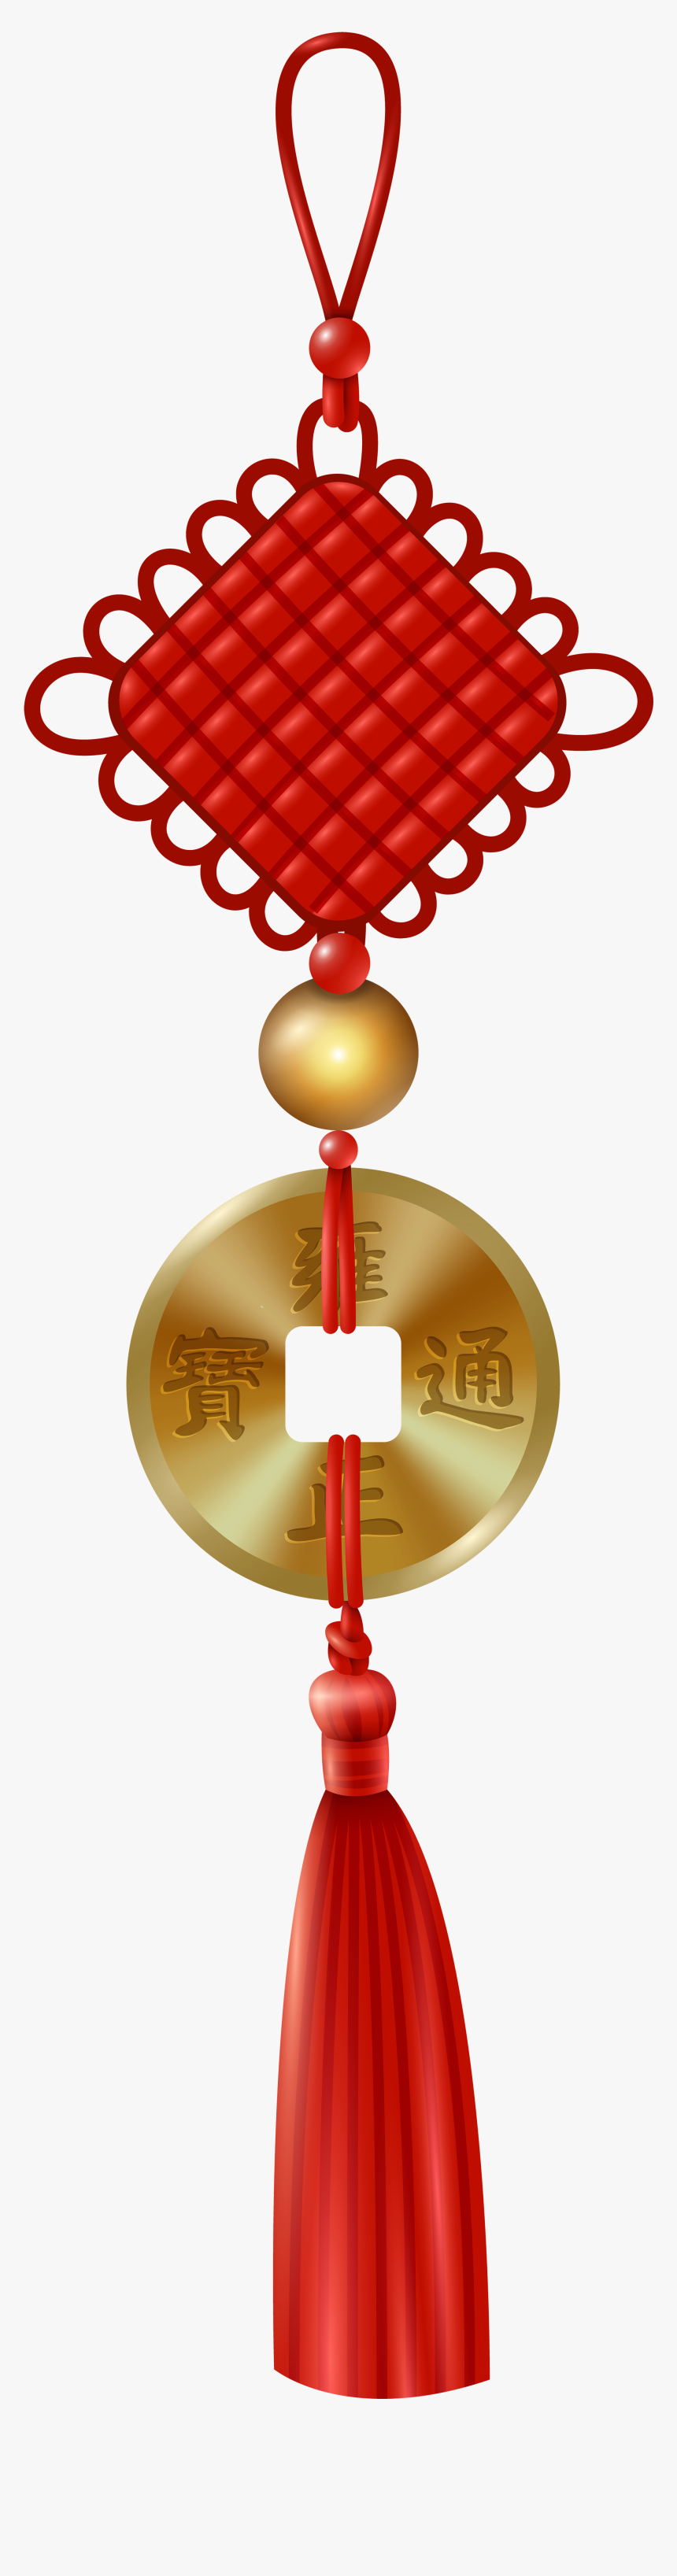 Hanging Decoration Chinese Png, Transparent Png, Free Download